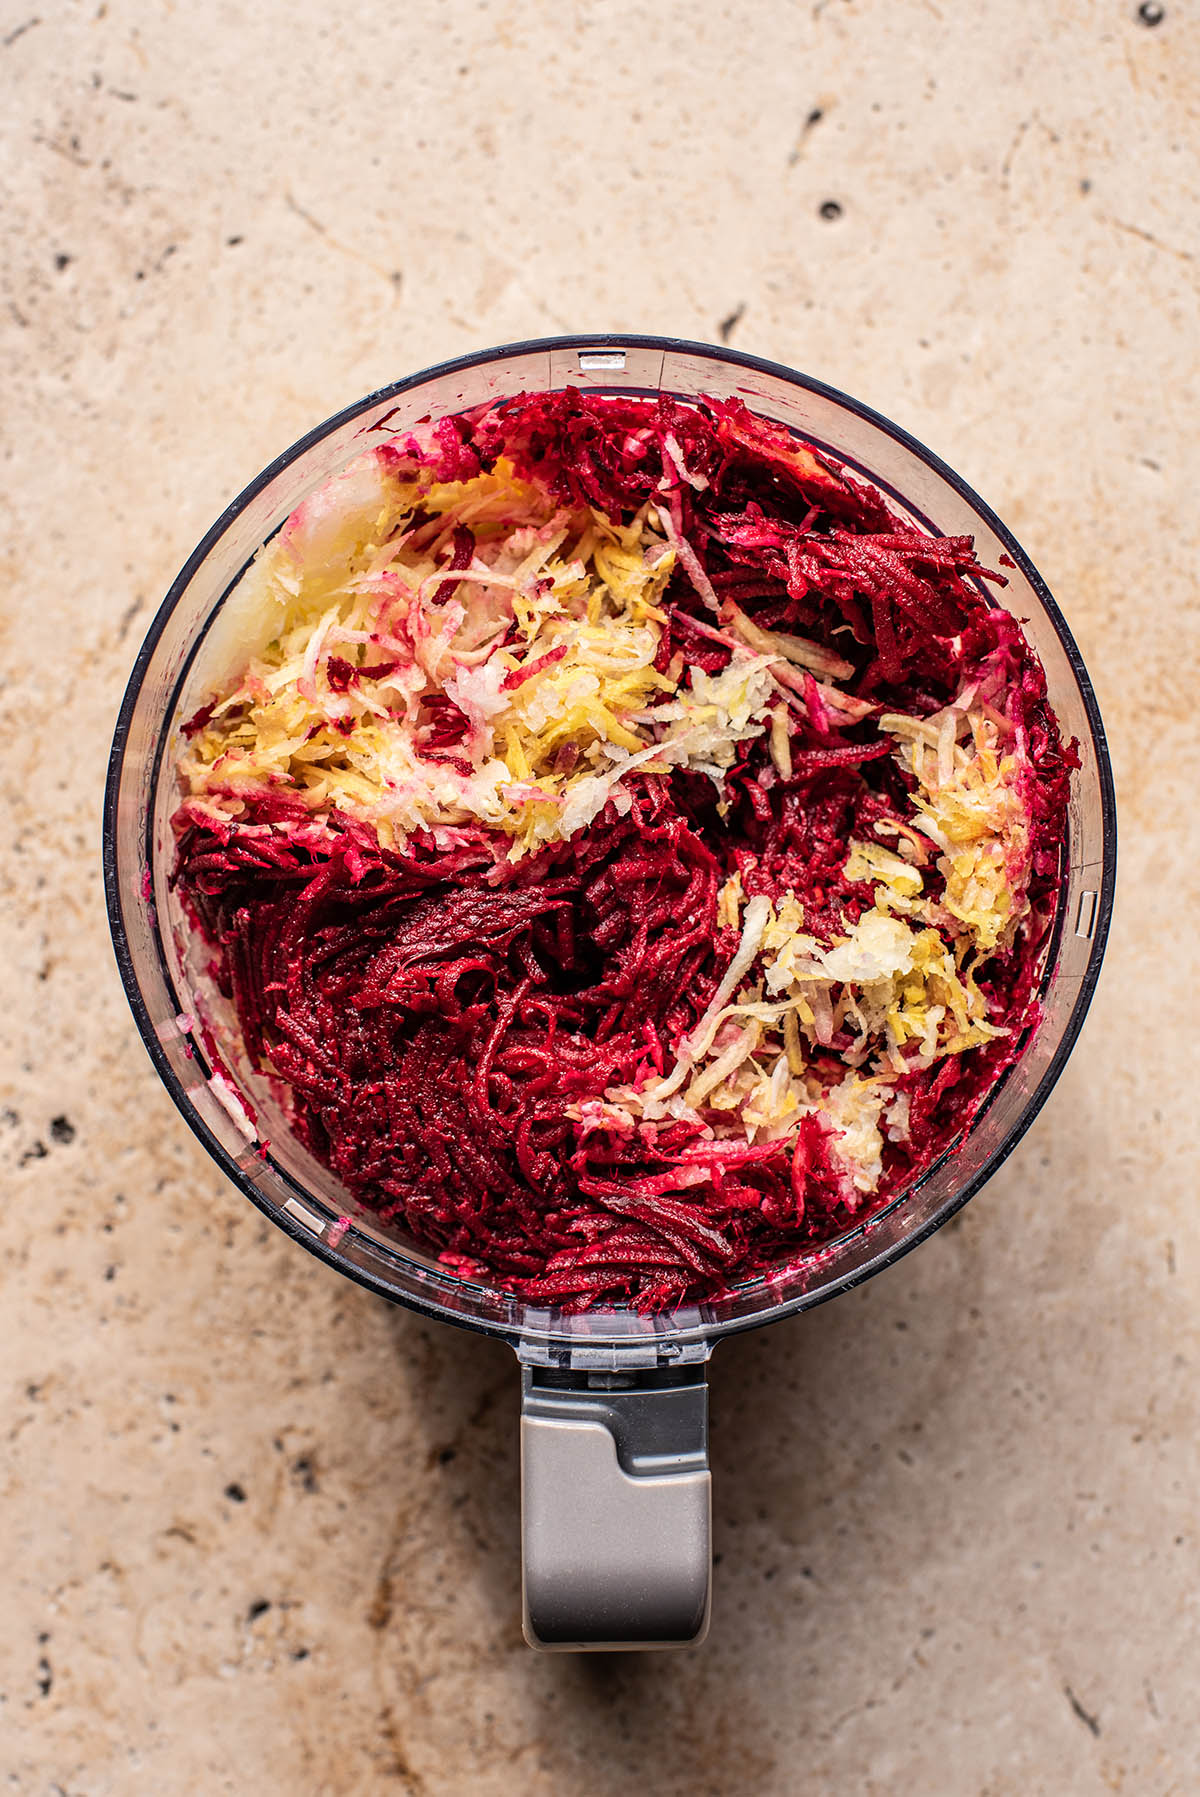 Shredded vegetables in a food processor.